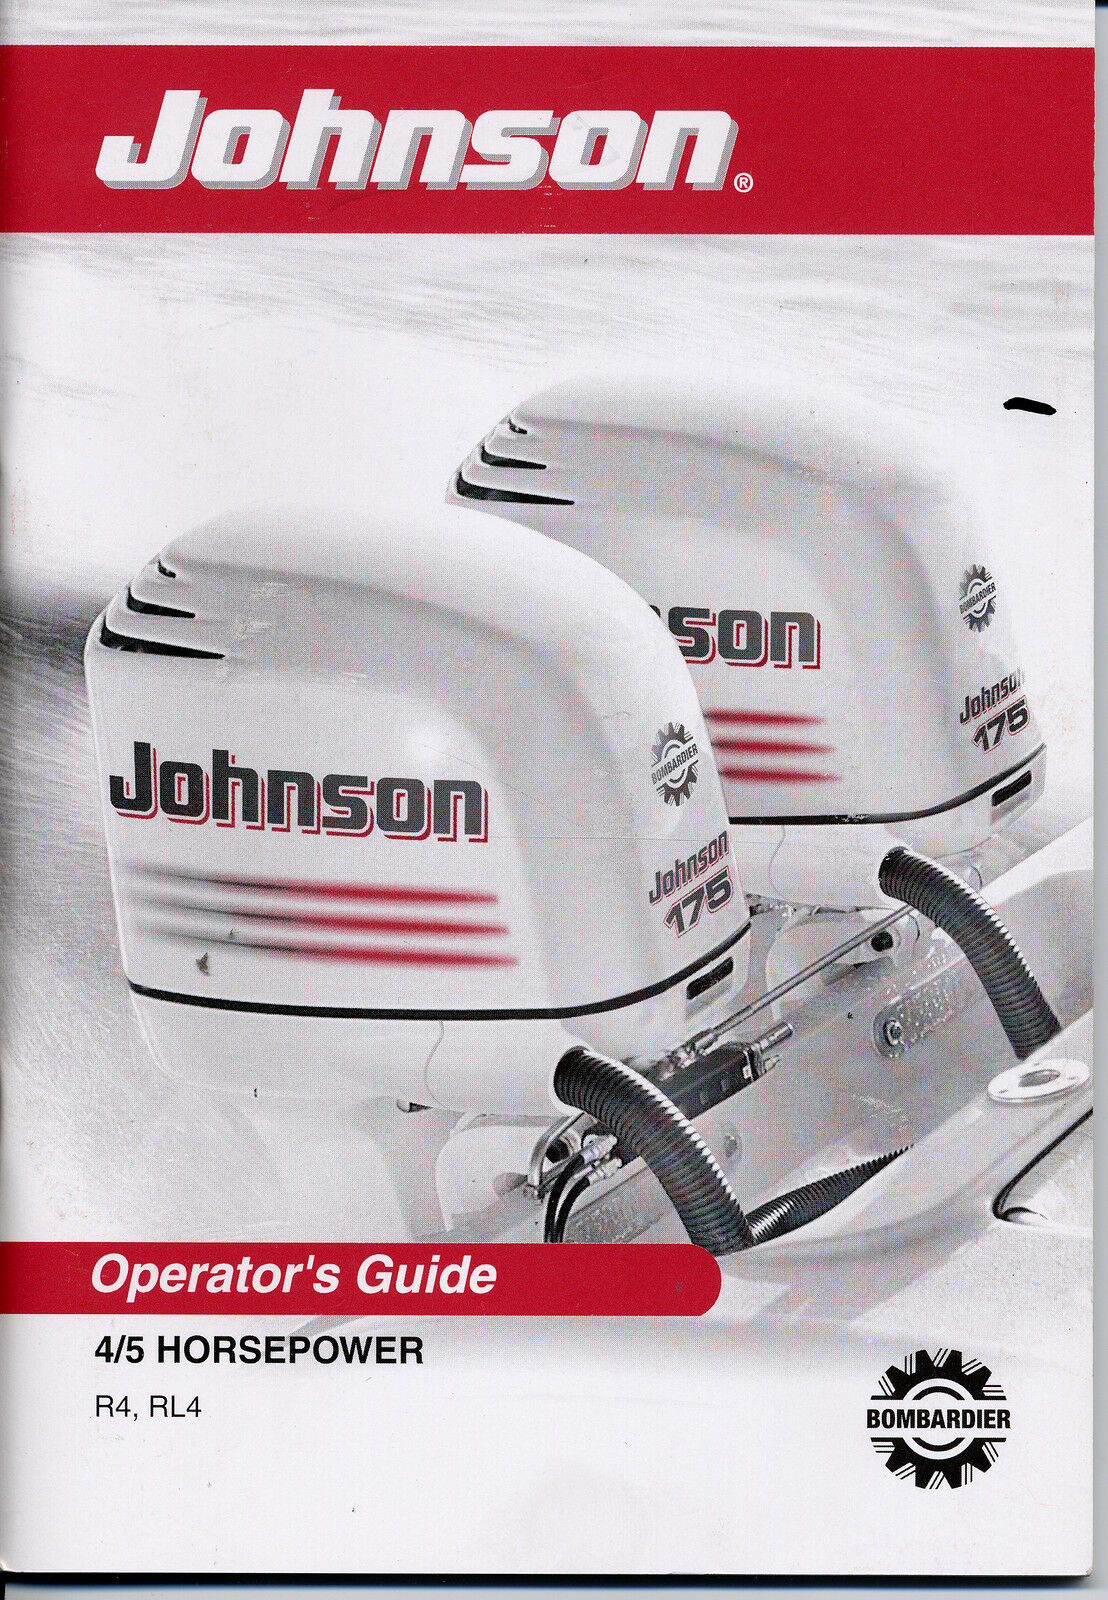 Johnson Outboard Owners Manual 2003 4HP 5HP 4-Stroke Models R4 RL4 1 of  1Only 1 available ...